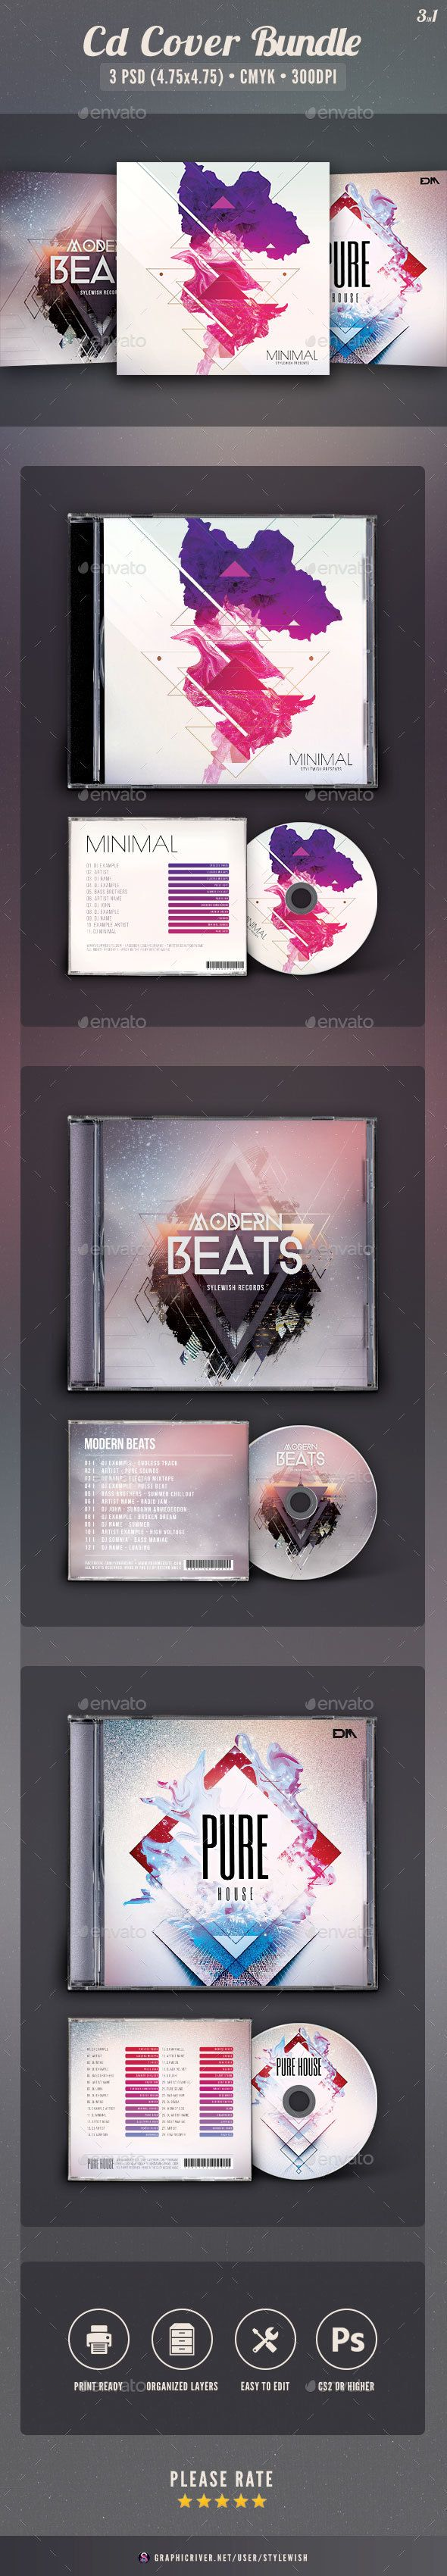 Abstract CD Cover Template PSD Bundle                                                                                                                                                                                 More